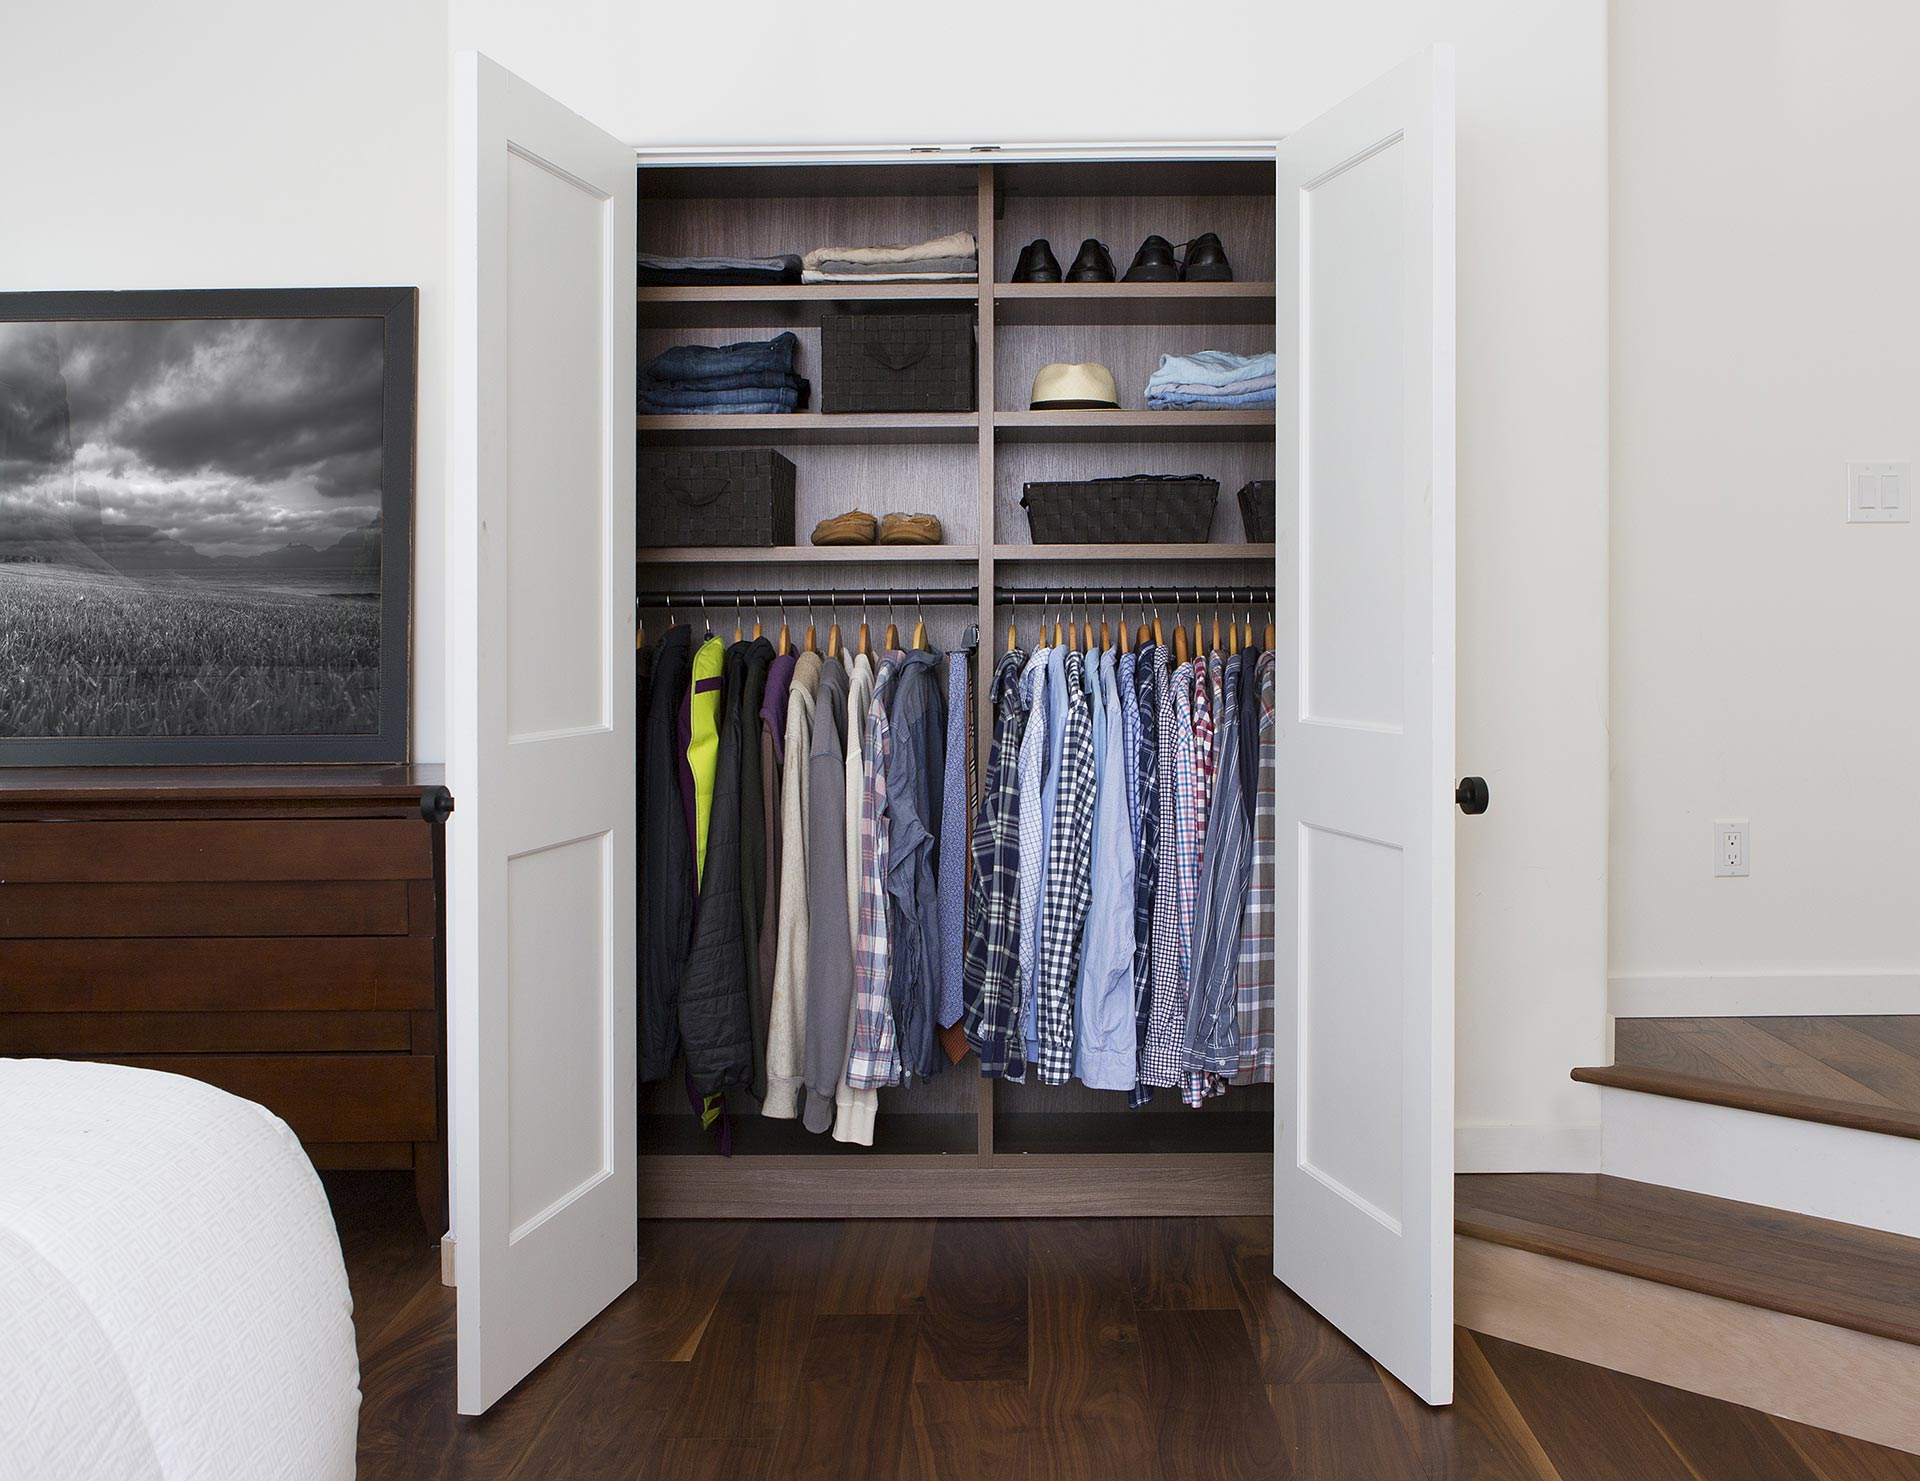 Reach In Closet Systems Reach In Closet Designs